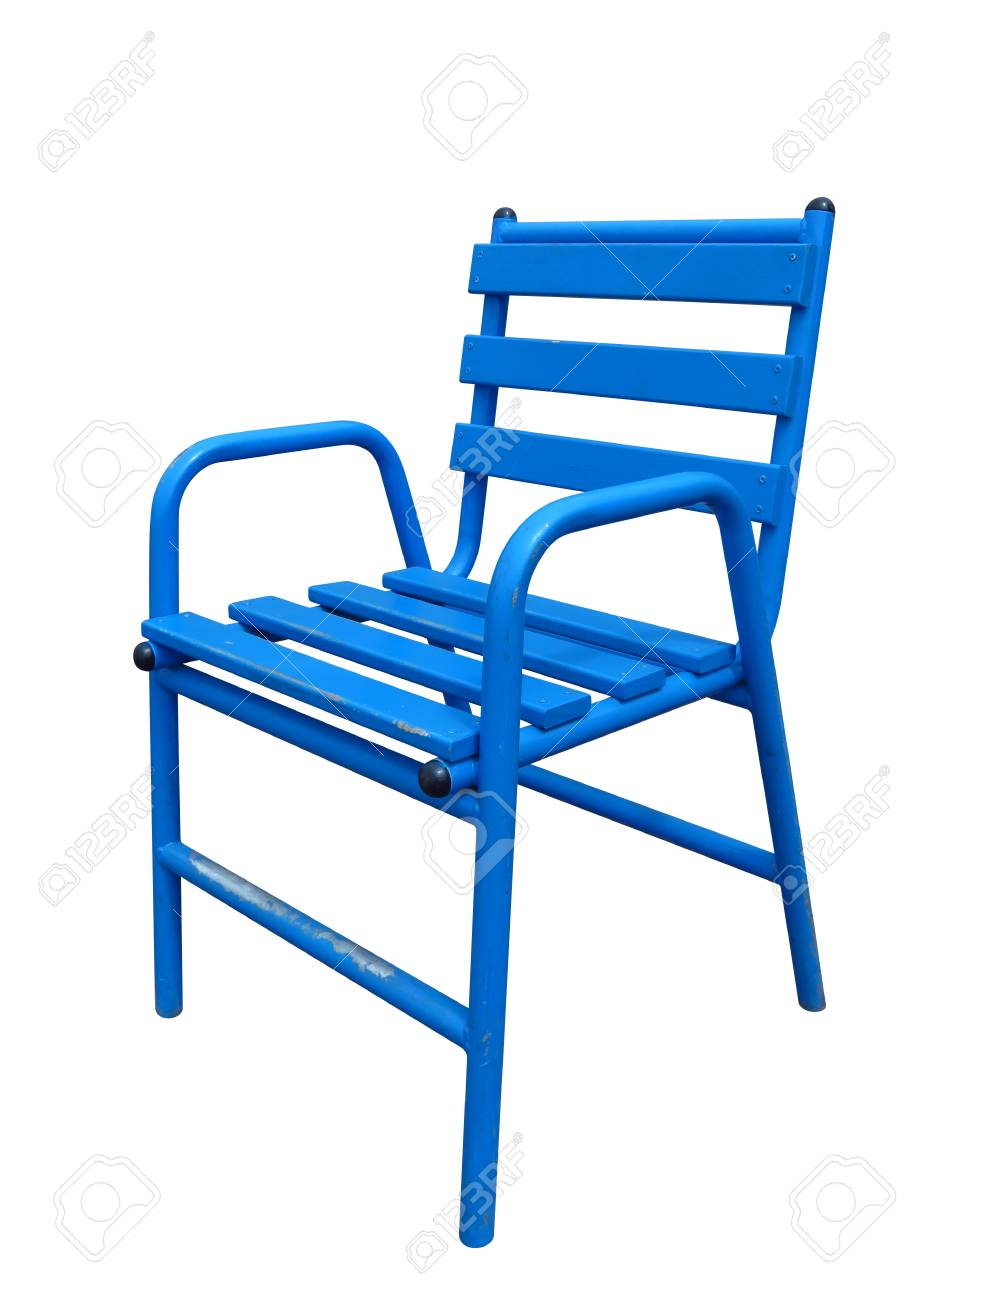 Famous Chair Famous Blue Cannes Chair Isolated On White Clipping Path Included